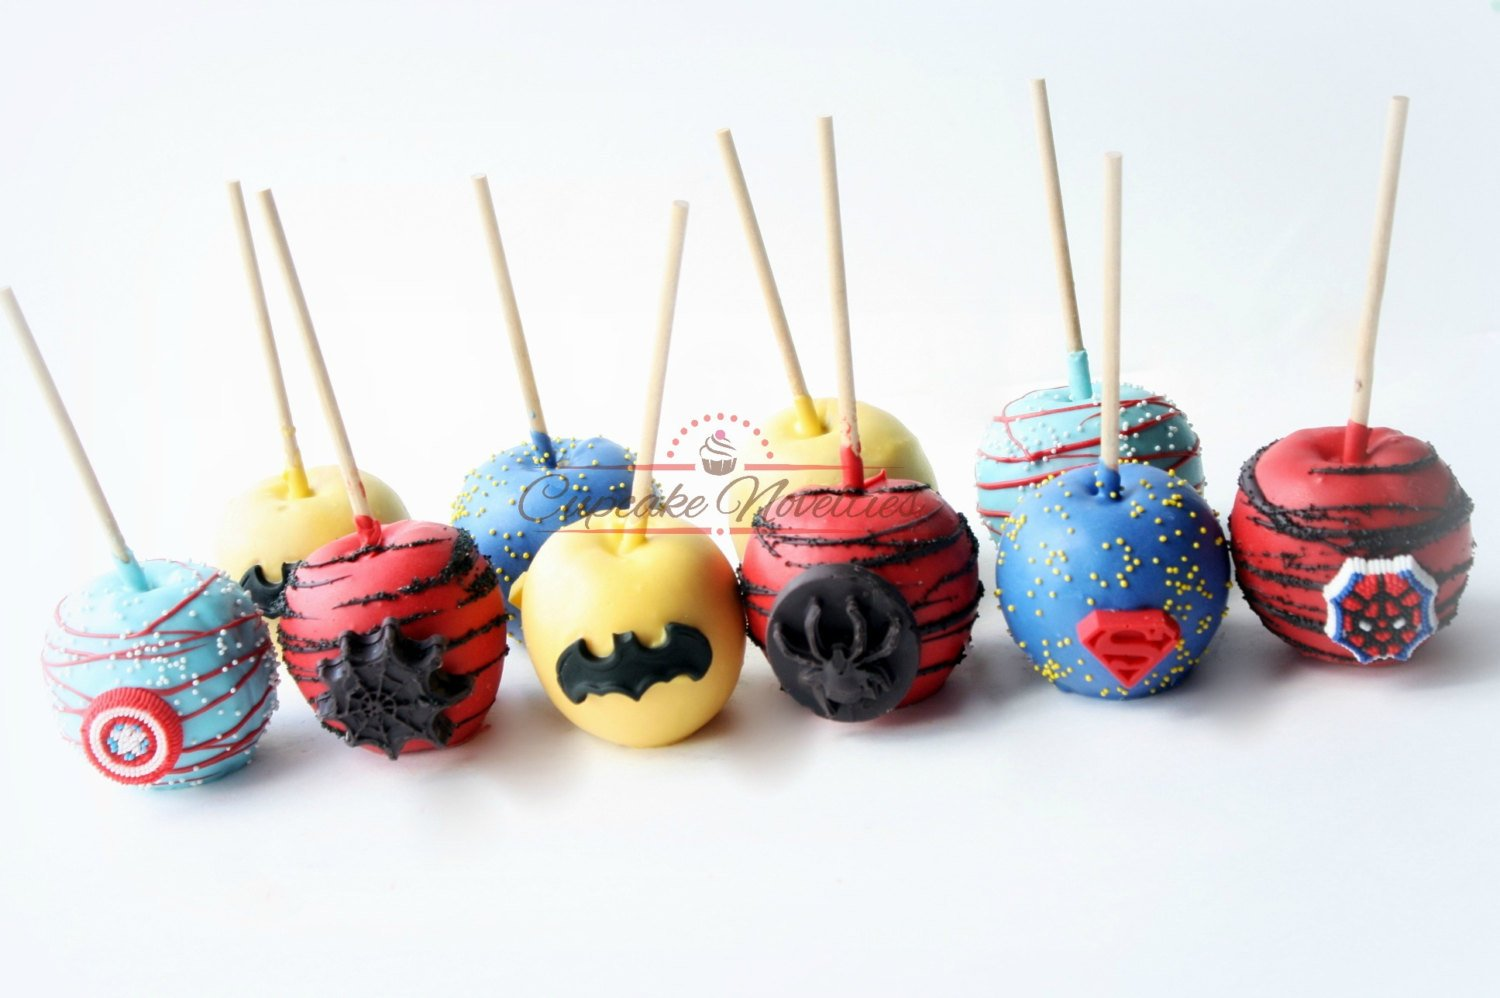 Superhero Birthday Super Hero Birthday Avengers Birthday Iron Man Captain America Birthday Party Favor Spiderman Birthday Superman Birthday